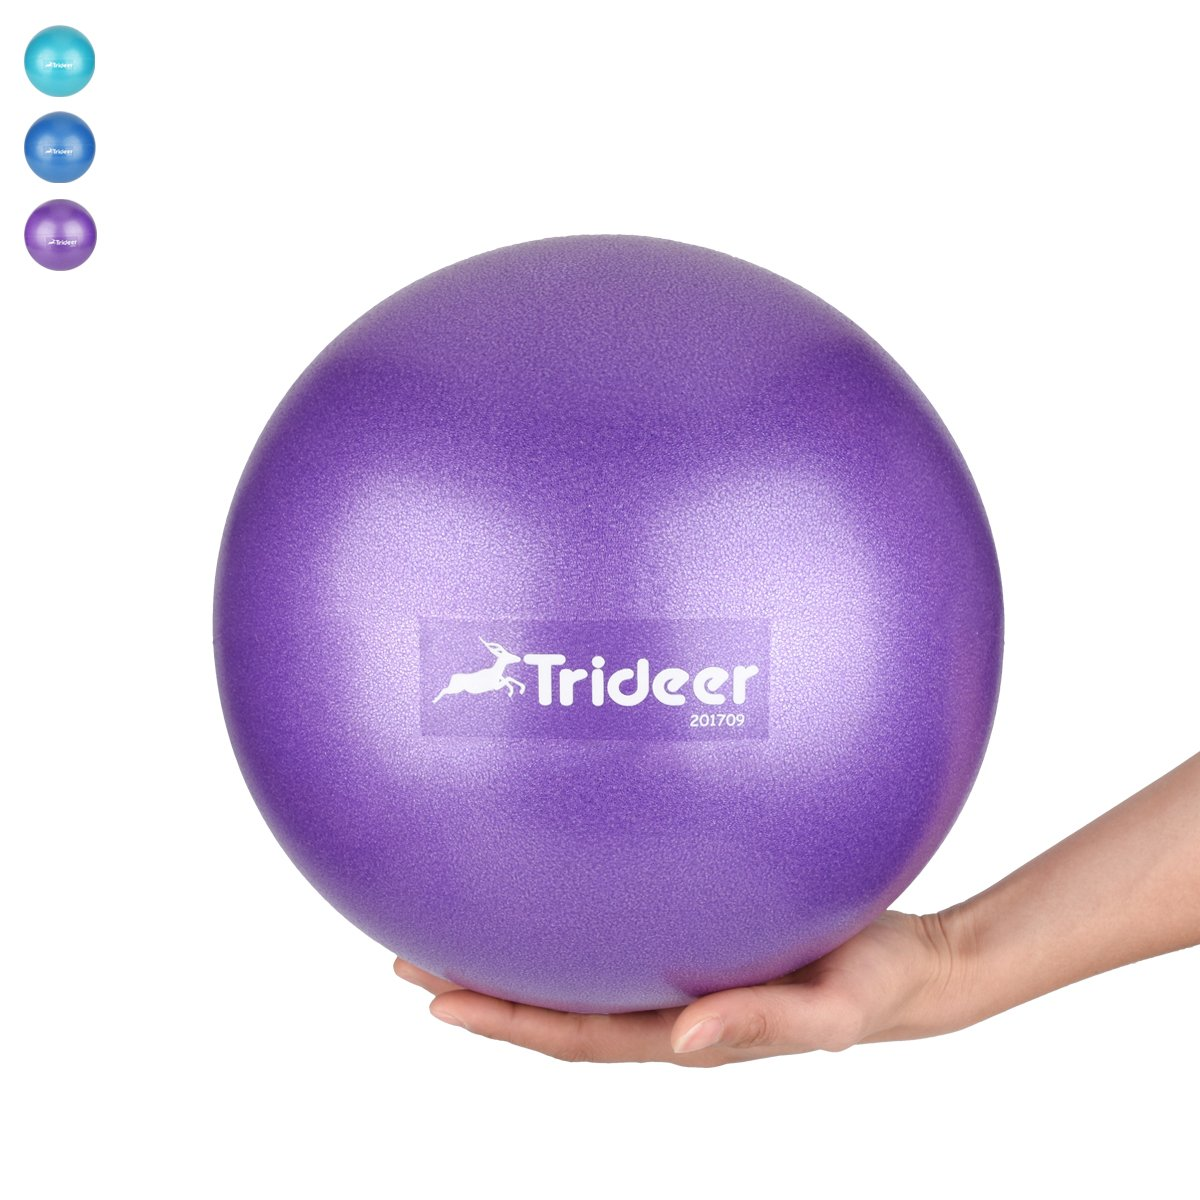 Mini Exercise Ball, Barre Ball, 9 Inch Small Bender Ball, Pilates, Yoga, Core Training and Physical Therapy, Improves Balance, Core Strength & Posture (Home & Gym & Office) (Purple (23cm))